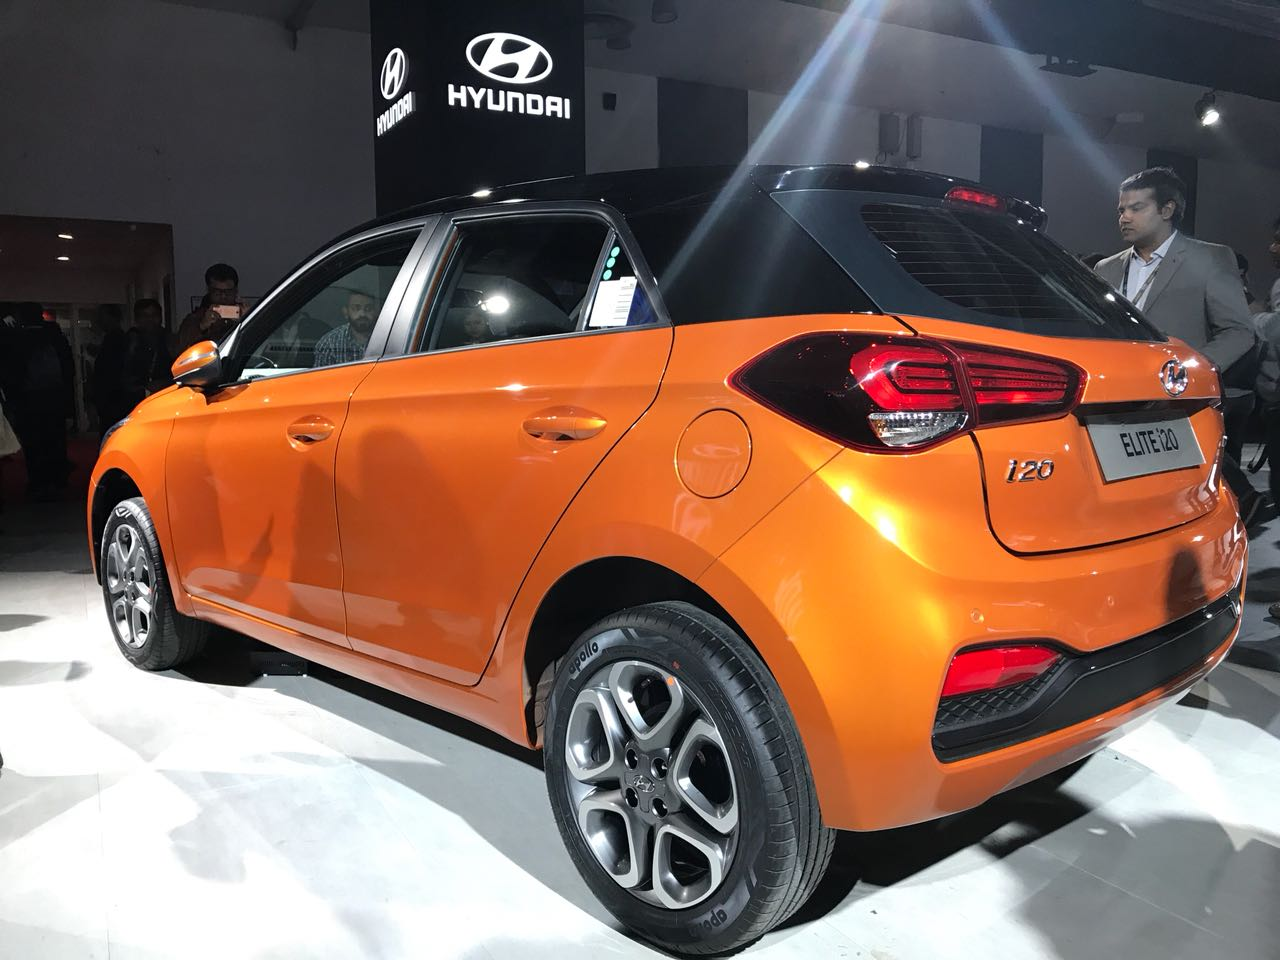 new 2018 hyundai elite i20 launched at auto expo 2018 prices l onwards. Black Bedroom Furniture Sets. Home Design Ideas